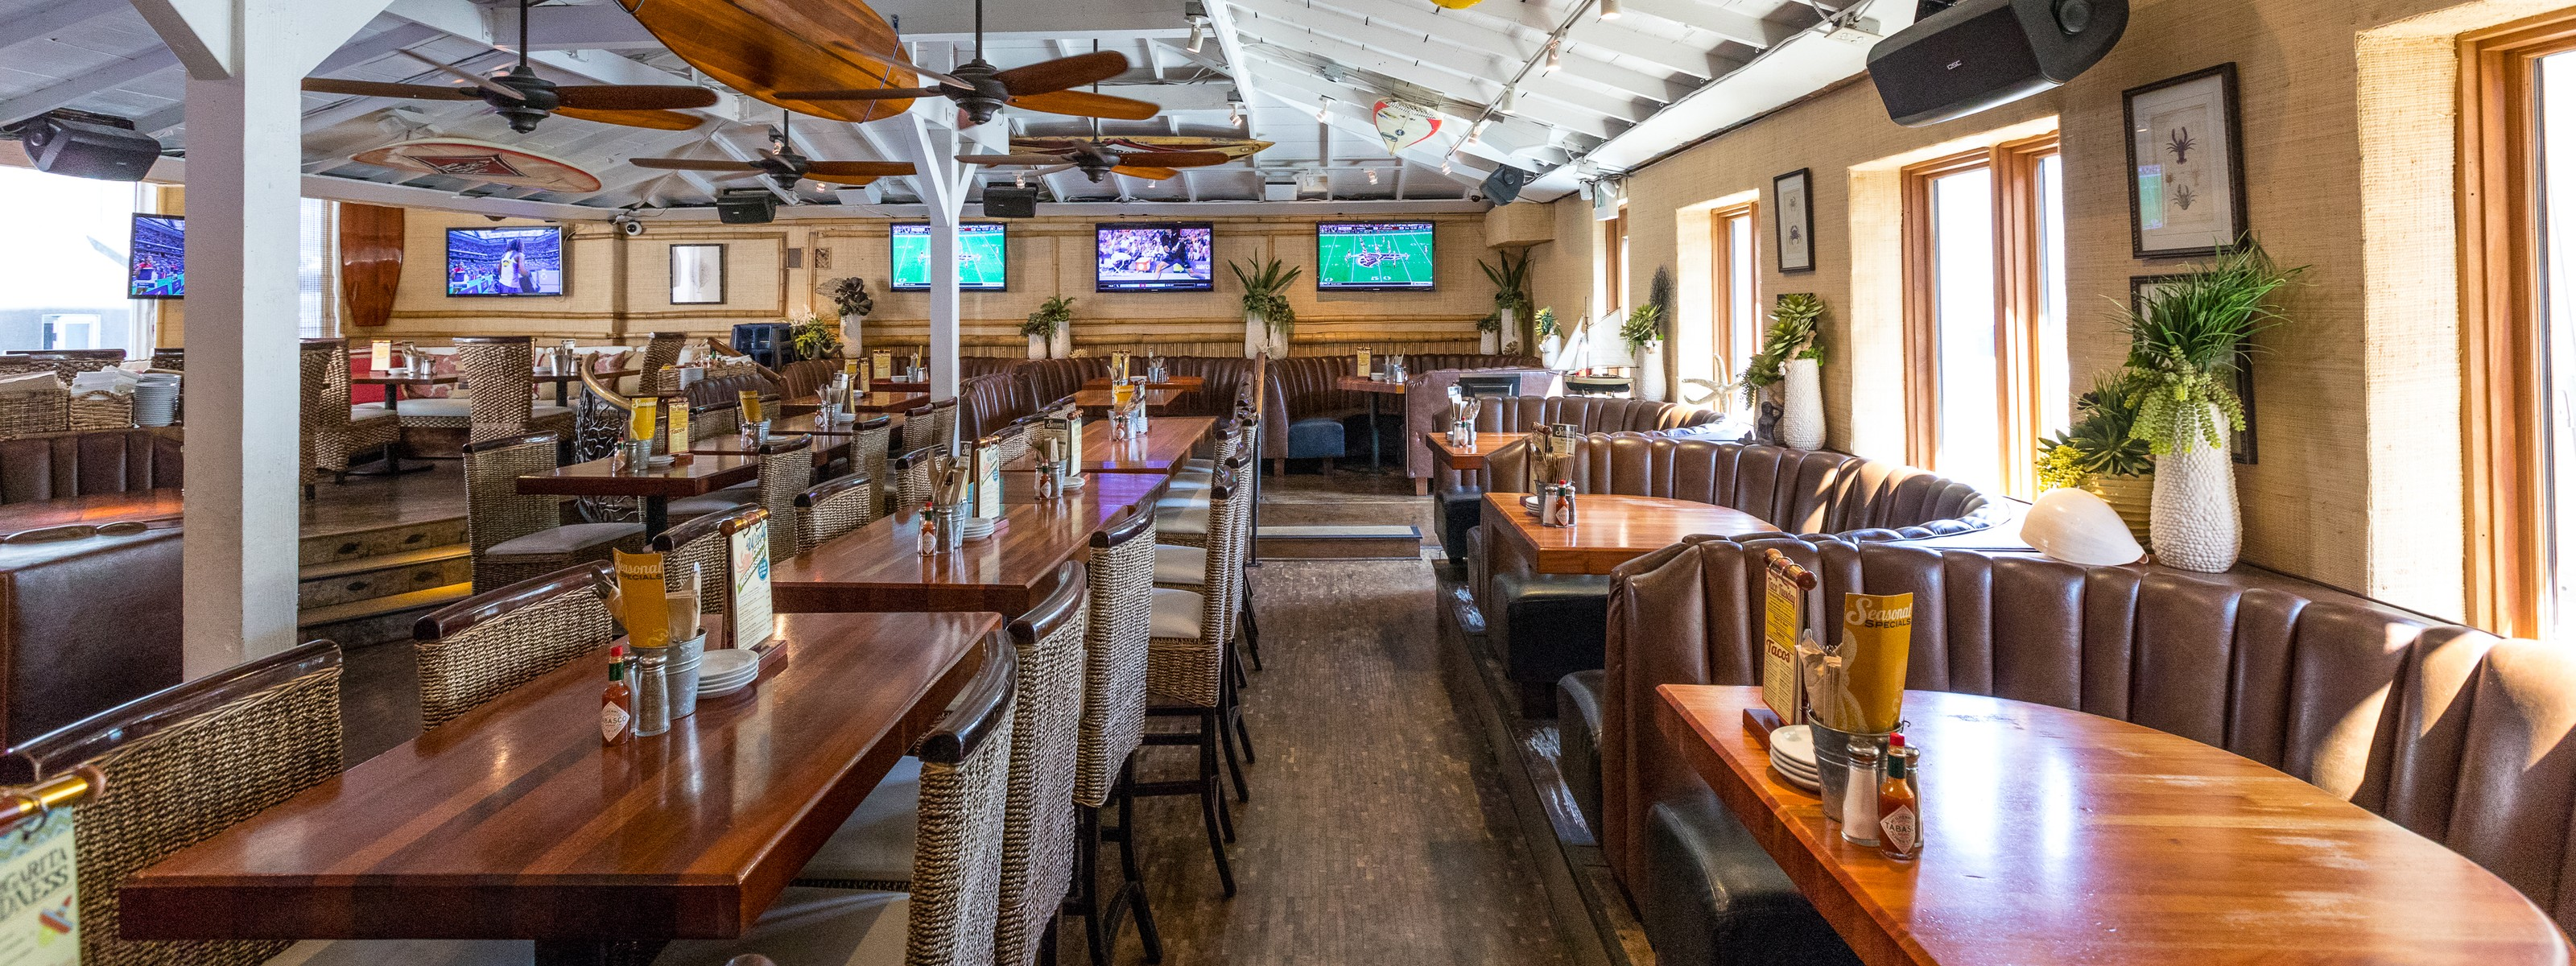 22 LA Sports Bars That Also Serve Good Food - Los Angeles - The ...